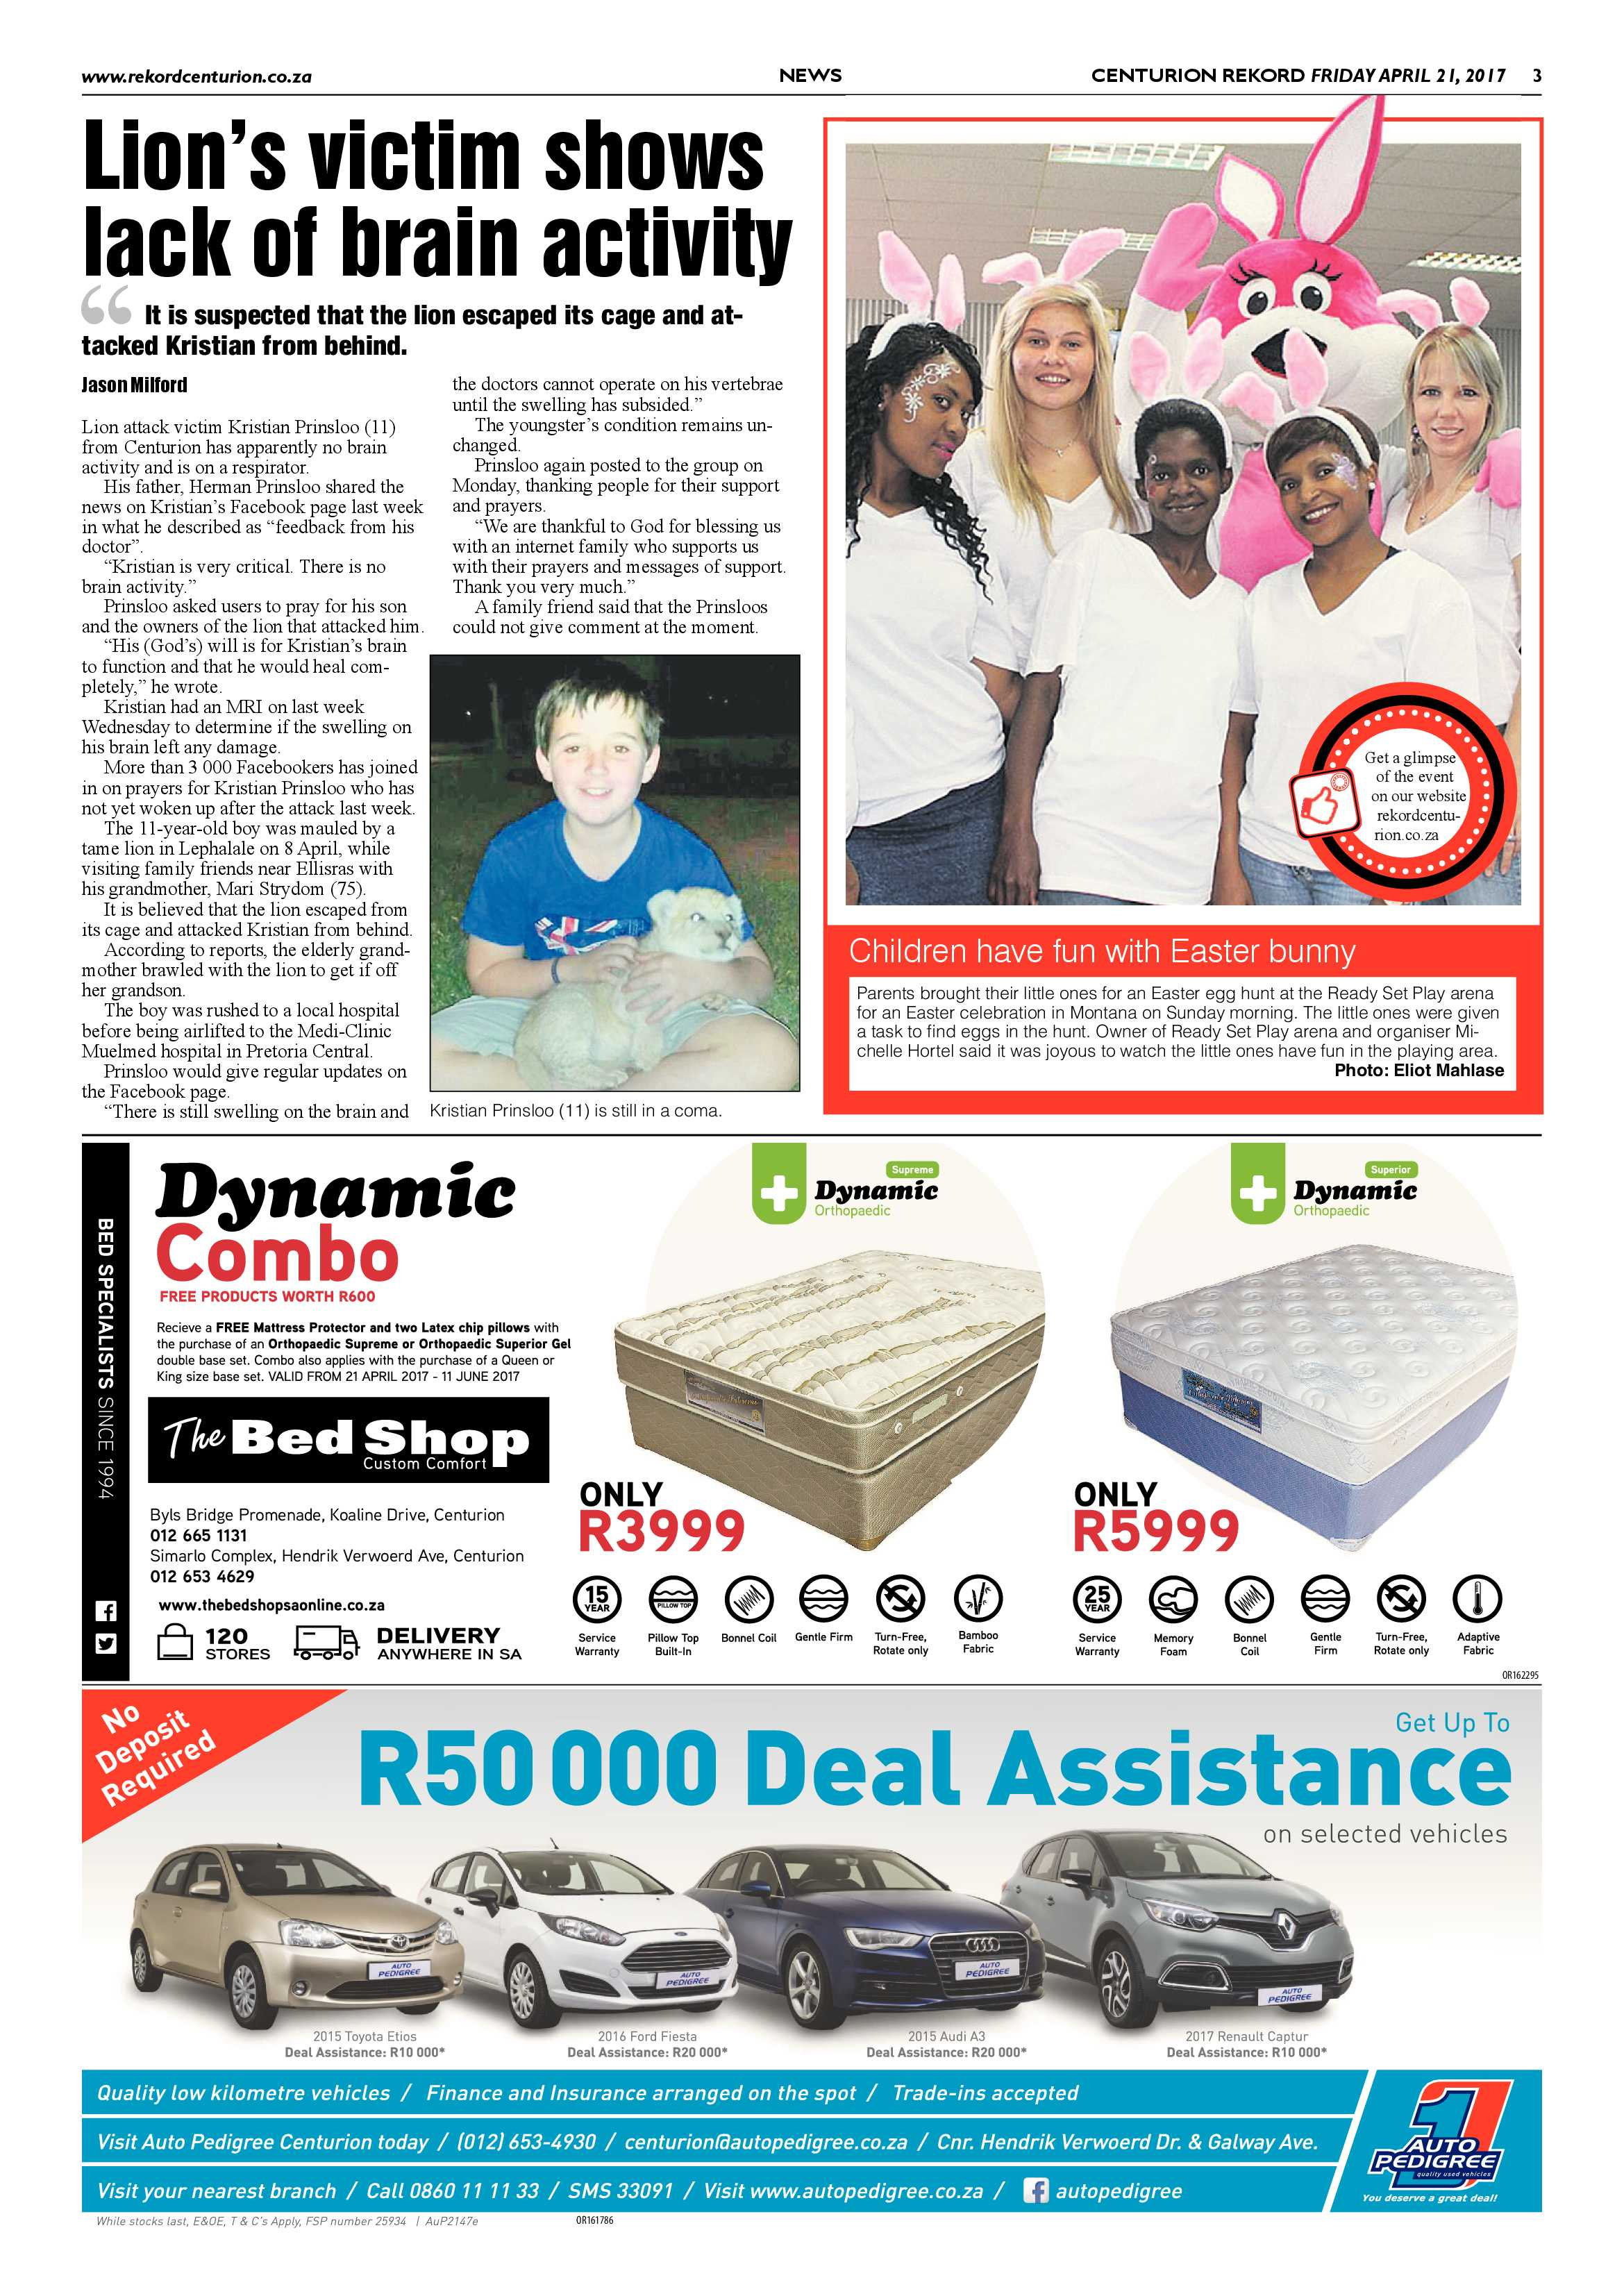 rekord-centurion-21-april-2017-epapers-page-3